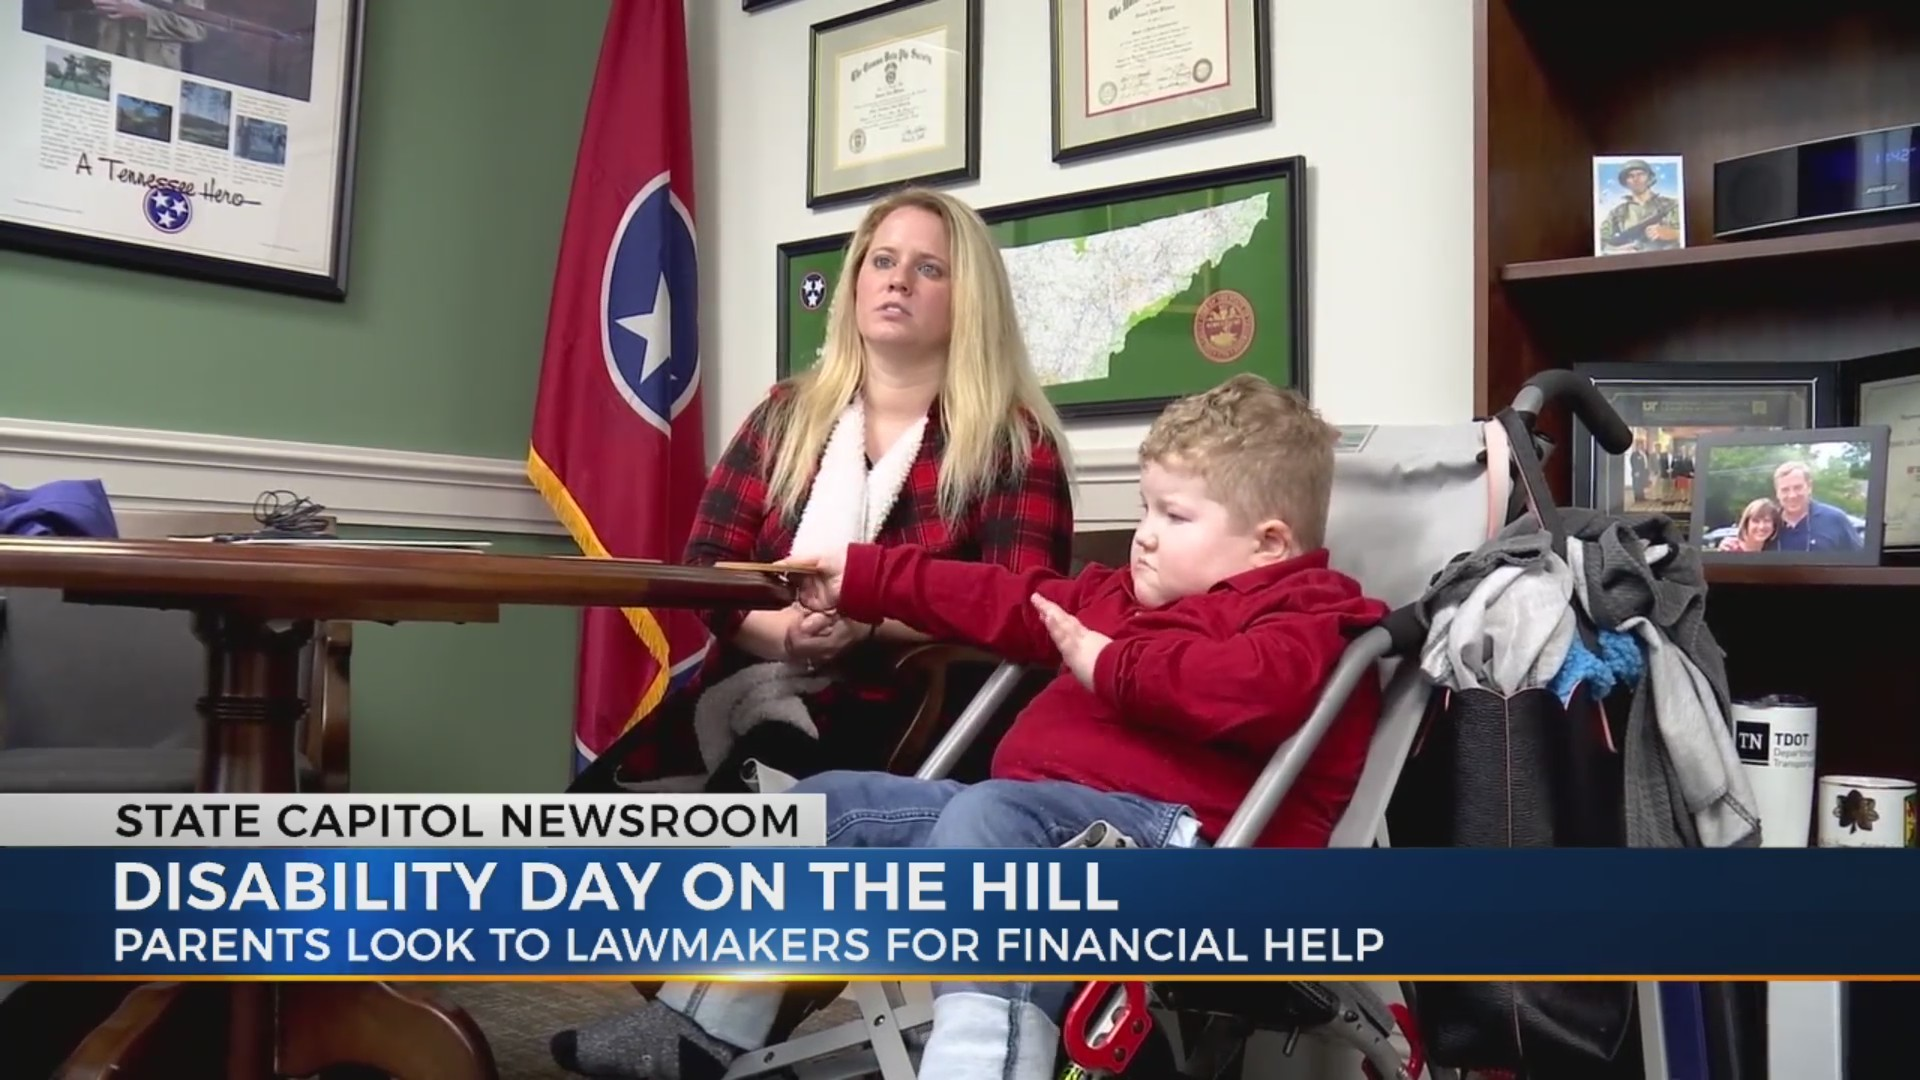 Families_with_special_needs_need_help_to_0_20190213000421-873703986